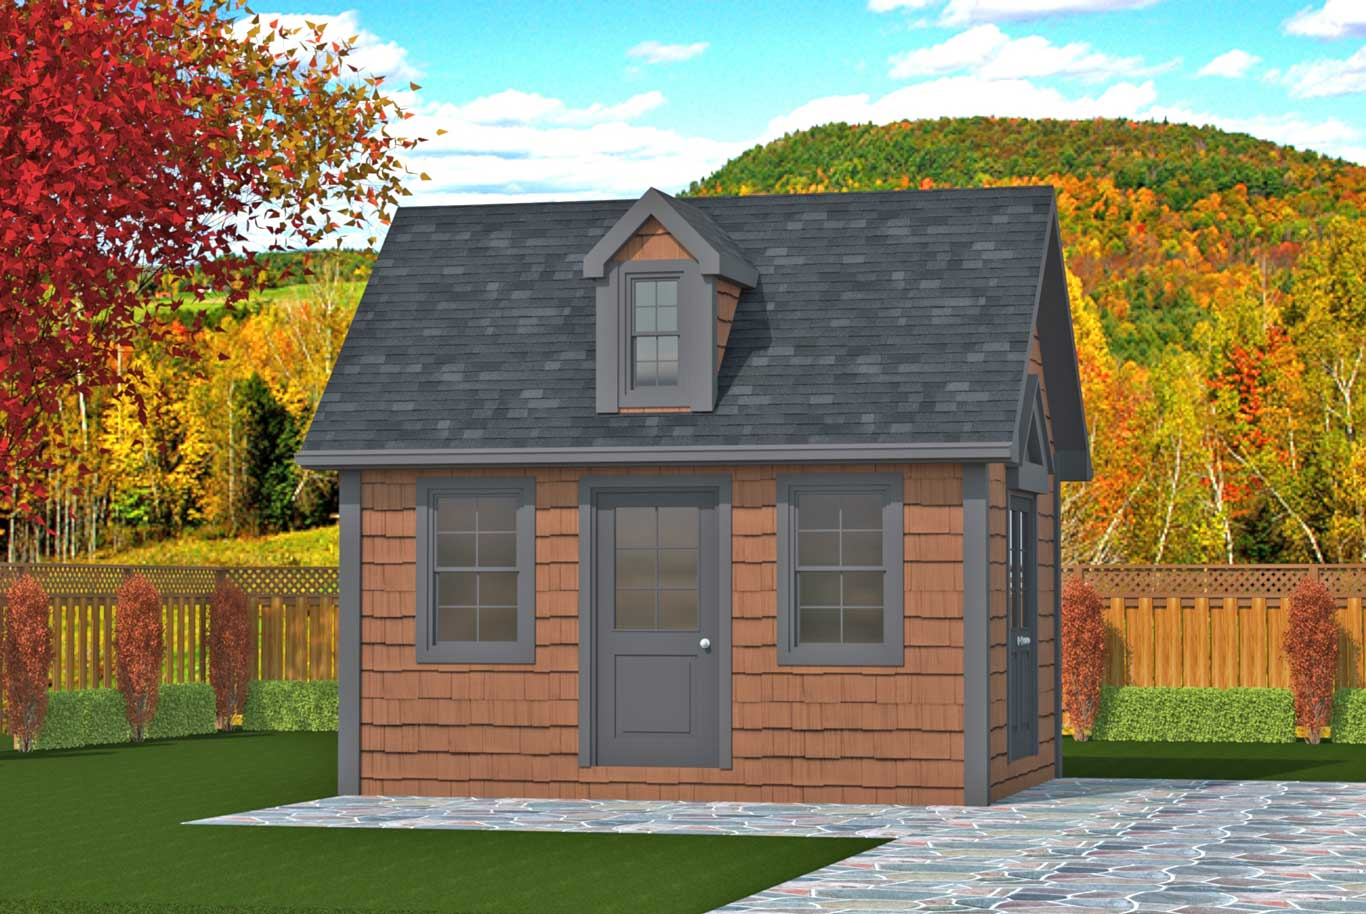 192 sq.ft. timber mart shed with two doors